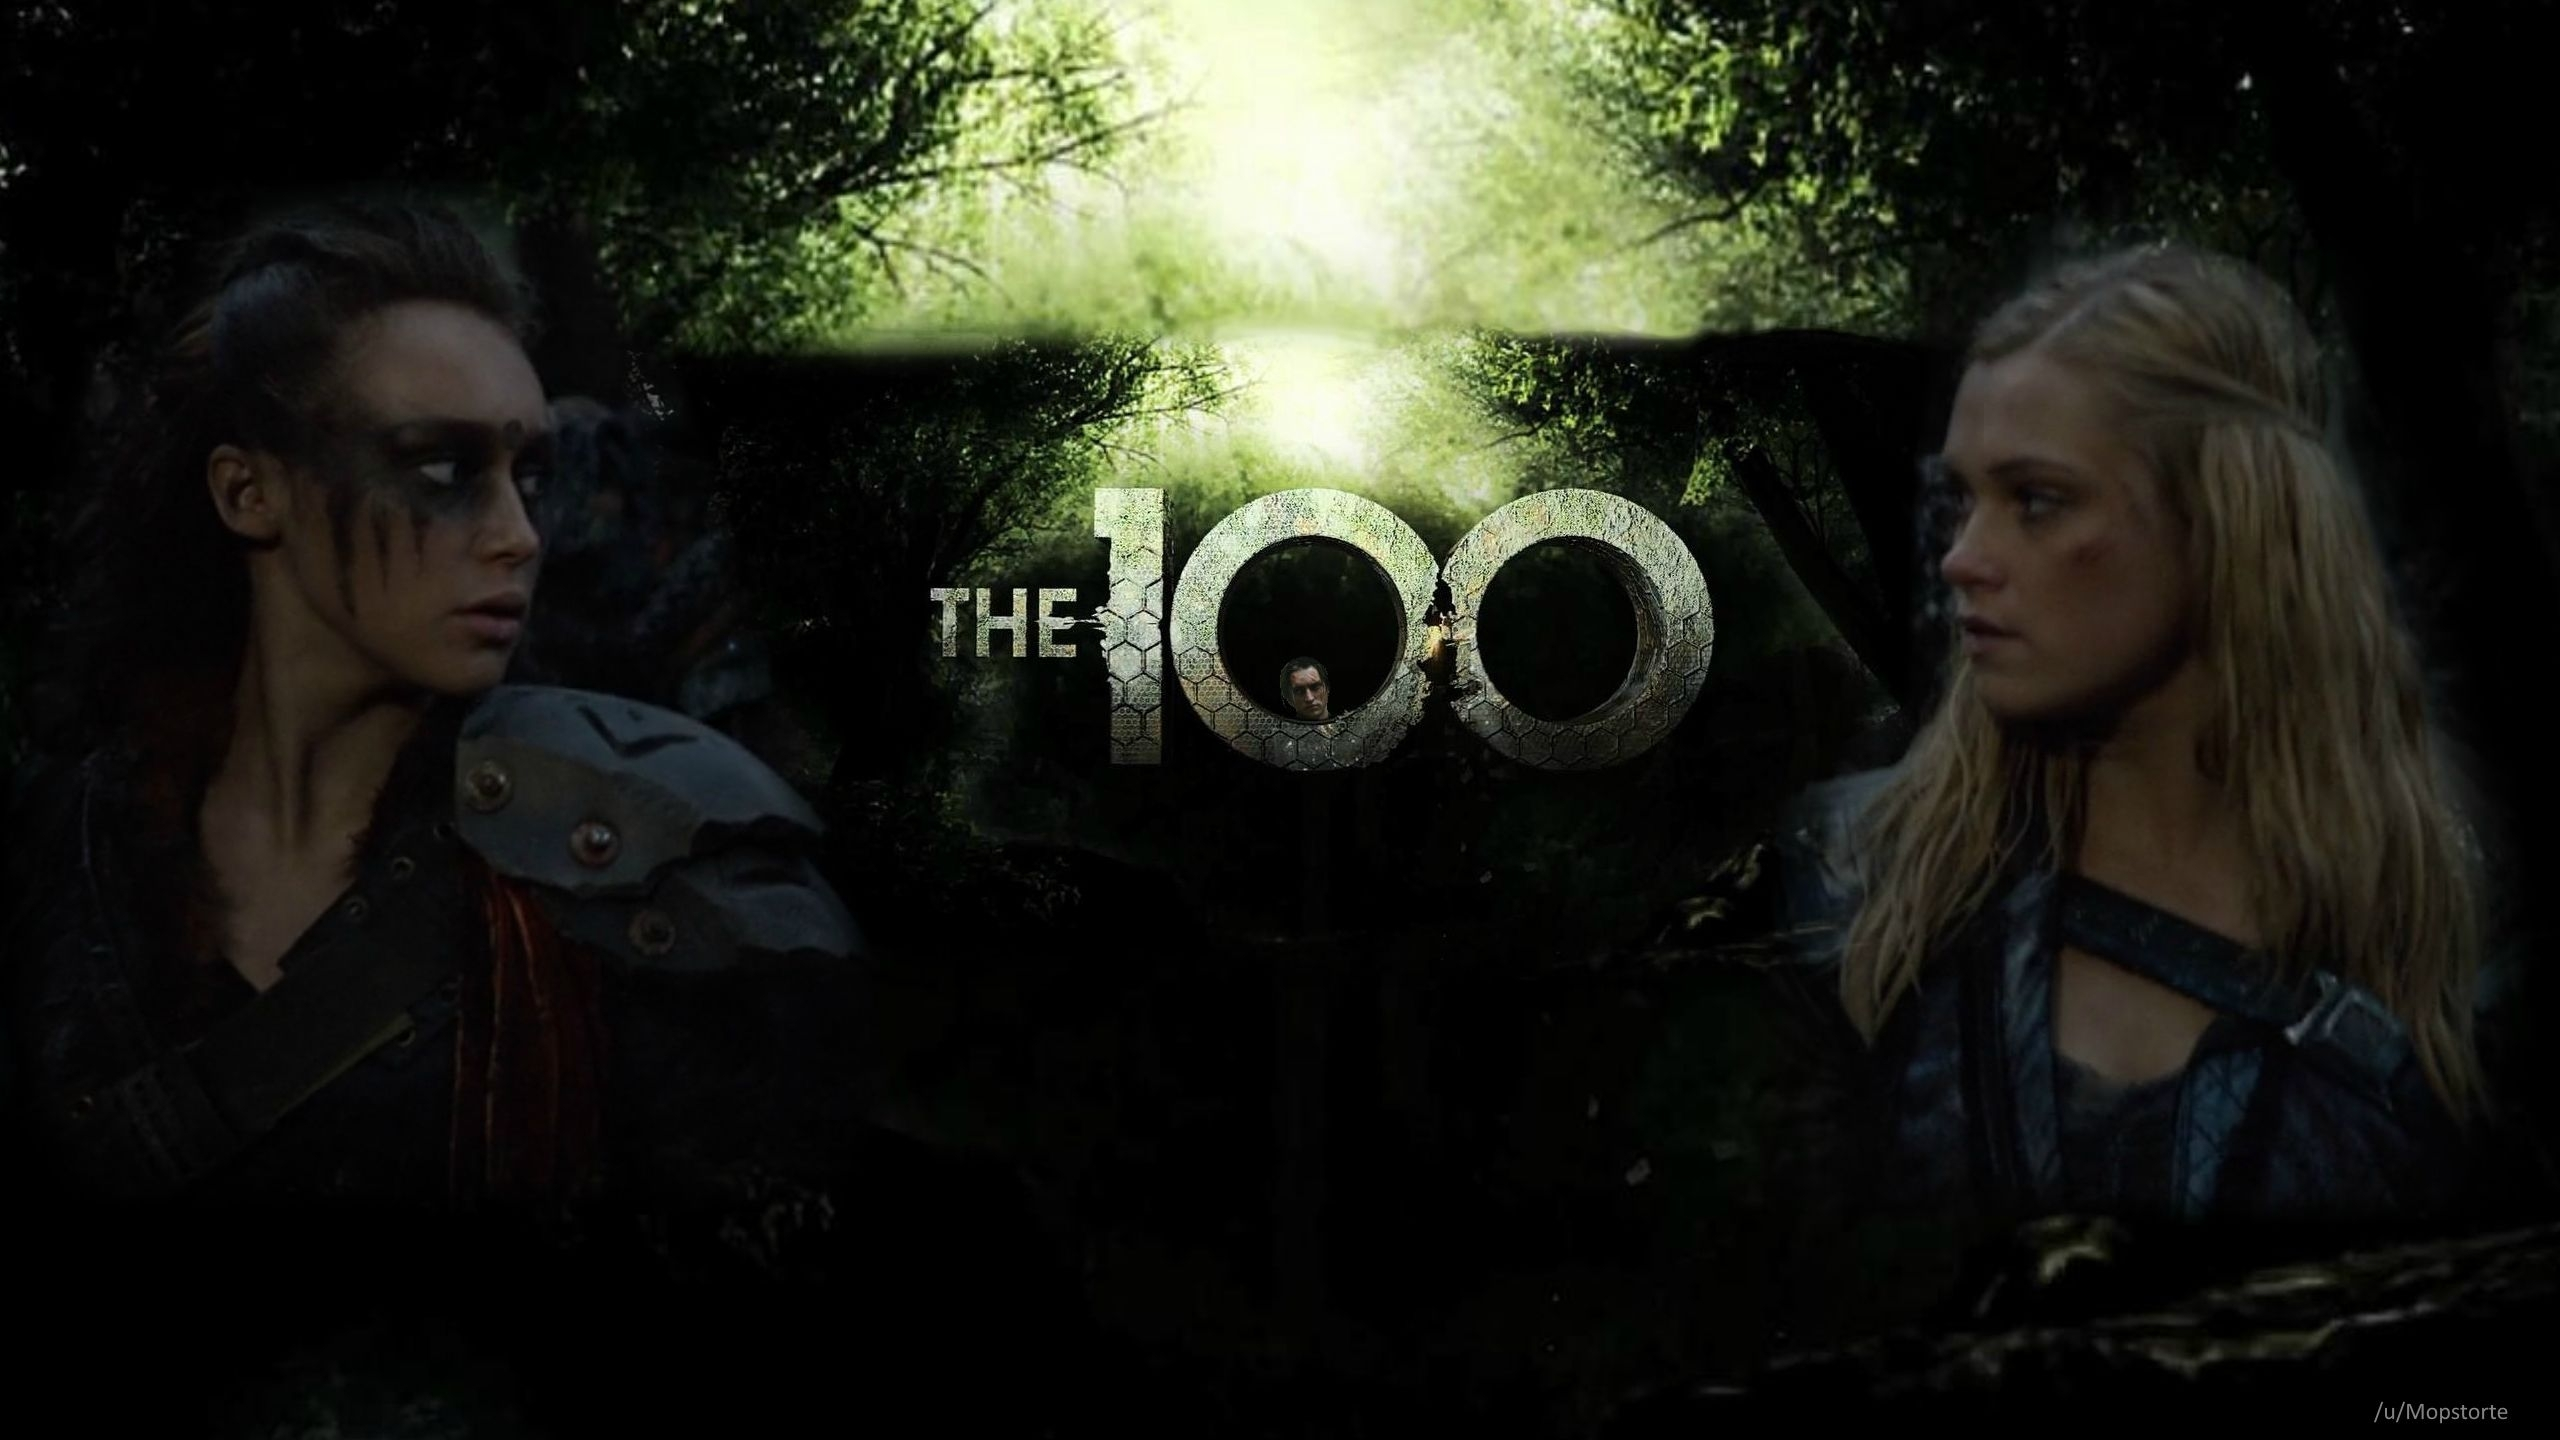 the 100 lexa and clarke - desktop background - imgur